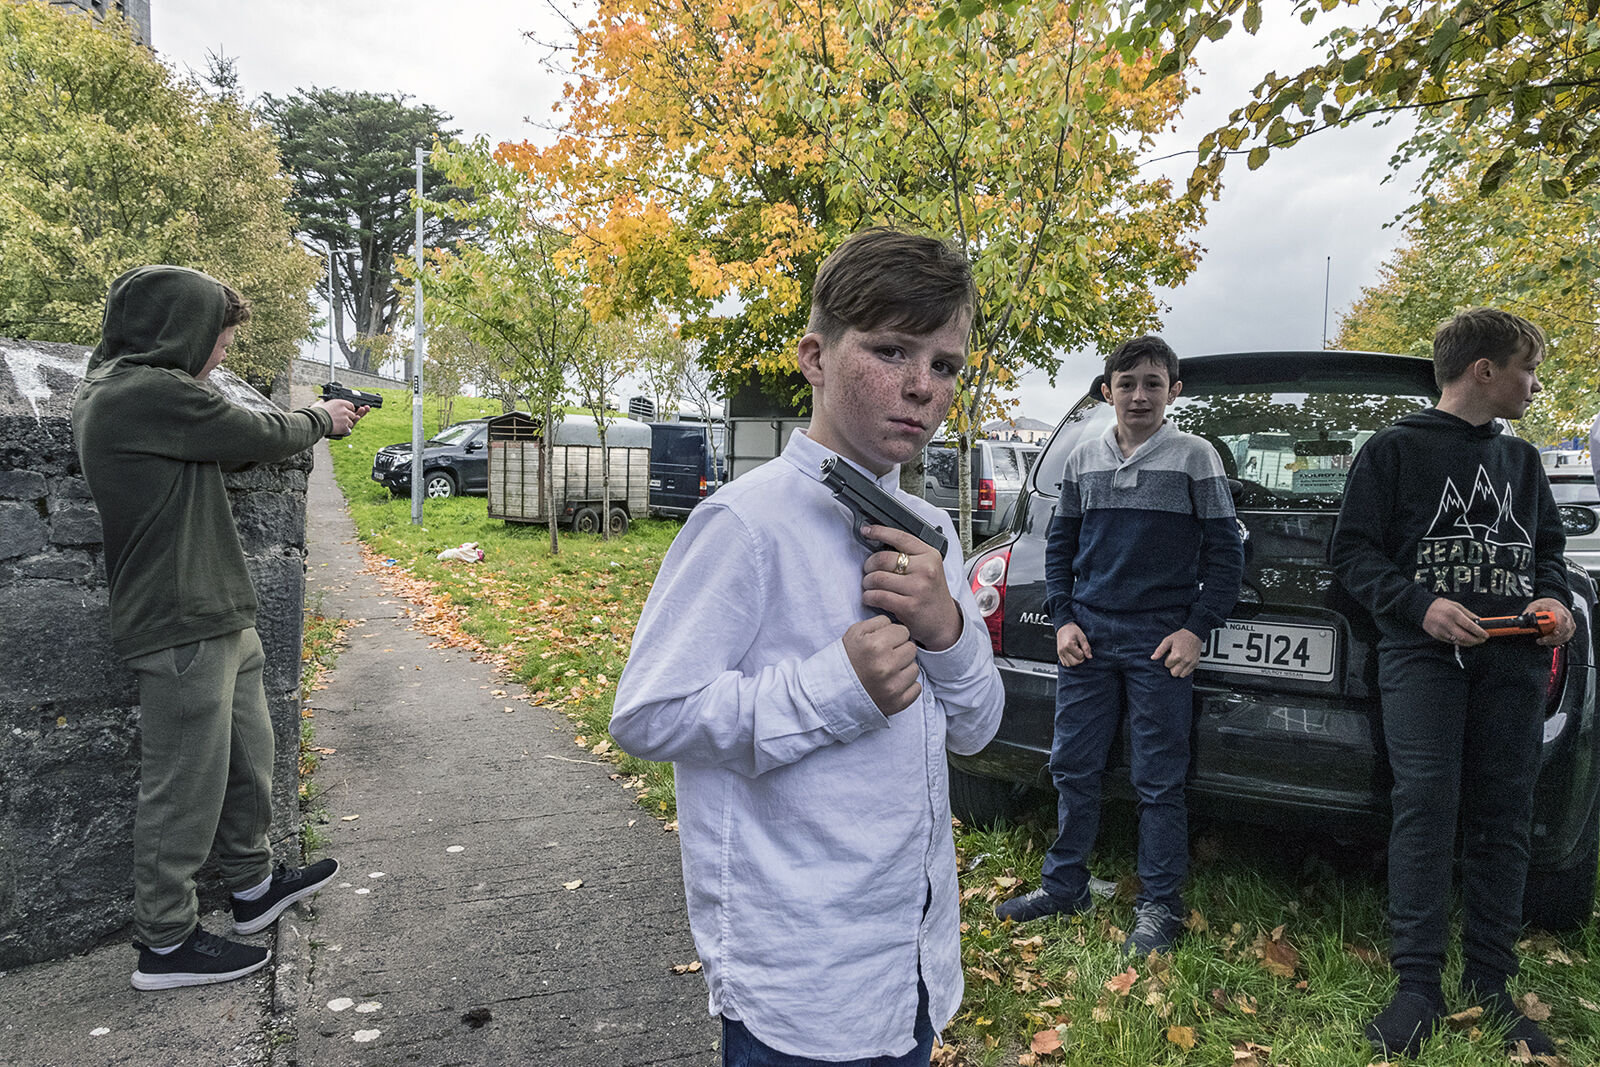 Boys with Pellet Guns, Galway, Ireland 2019